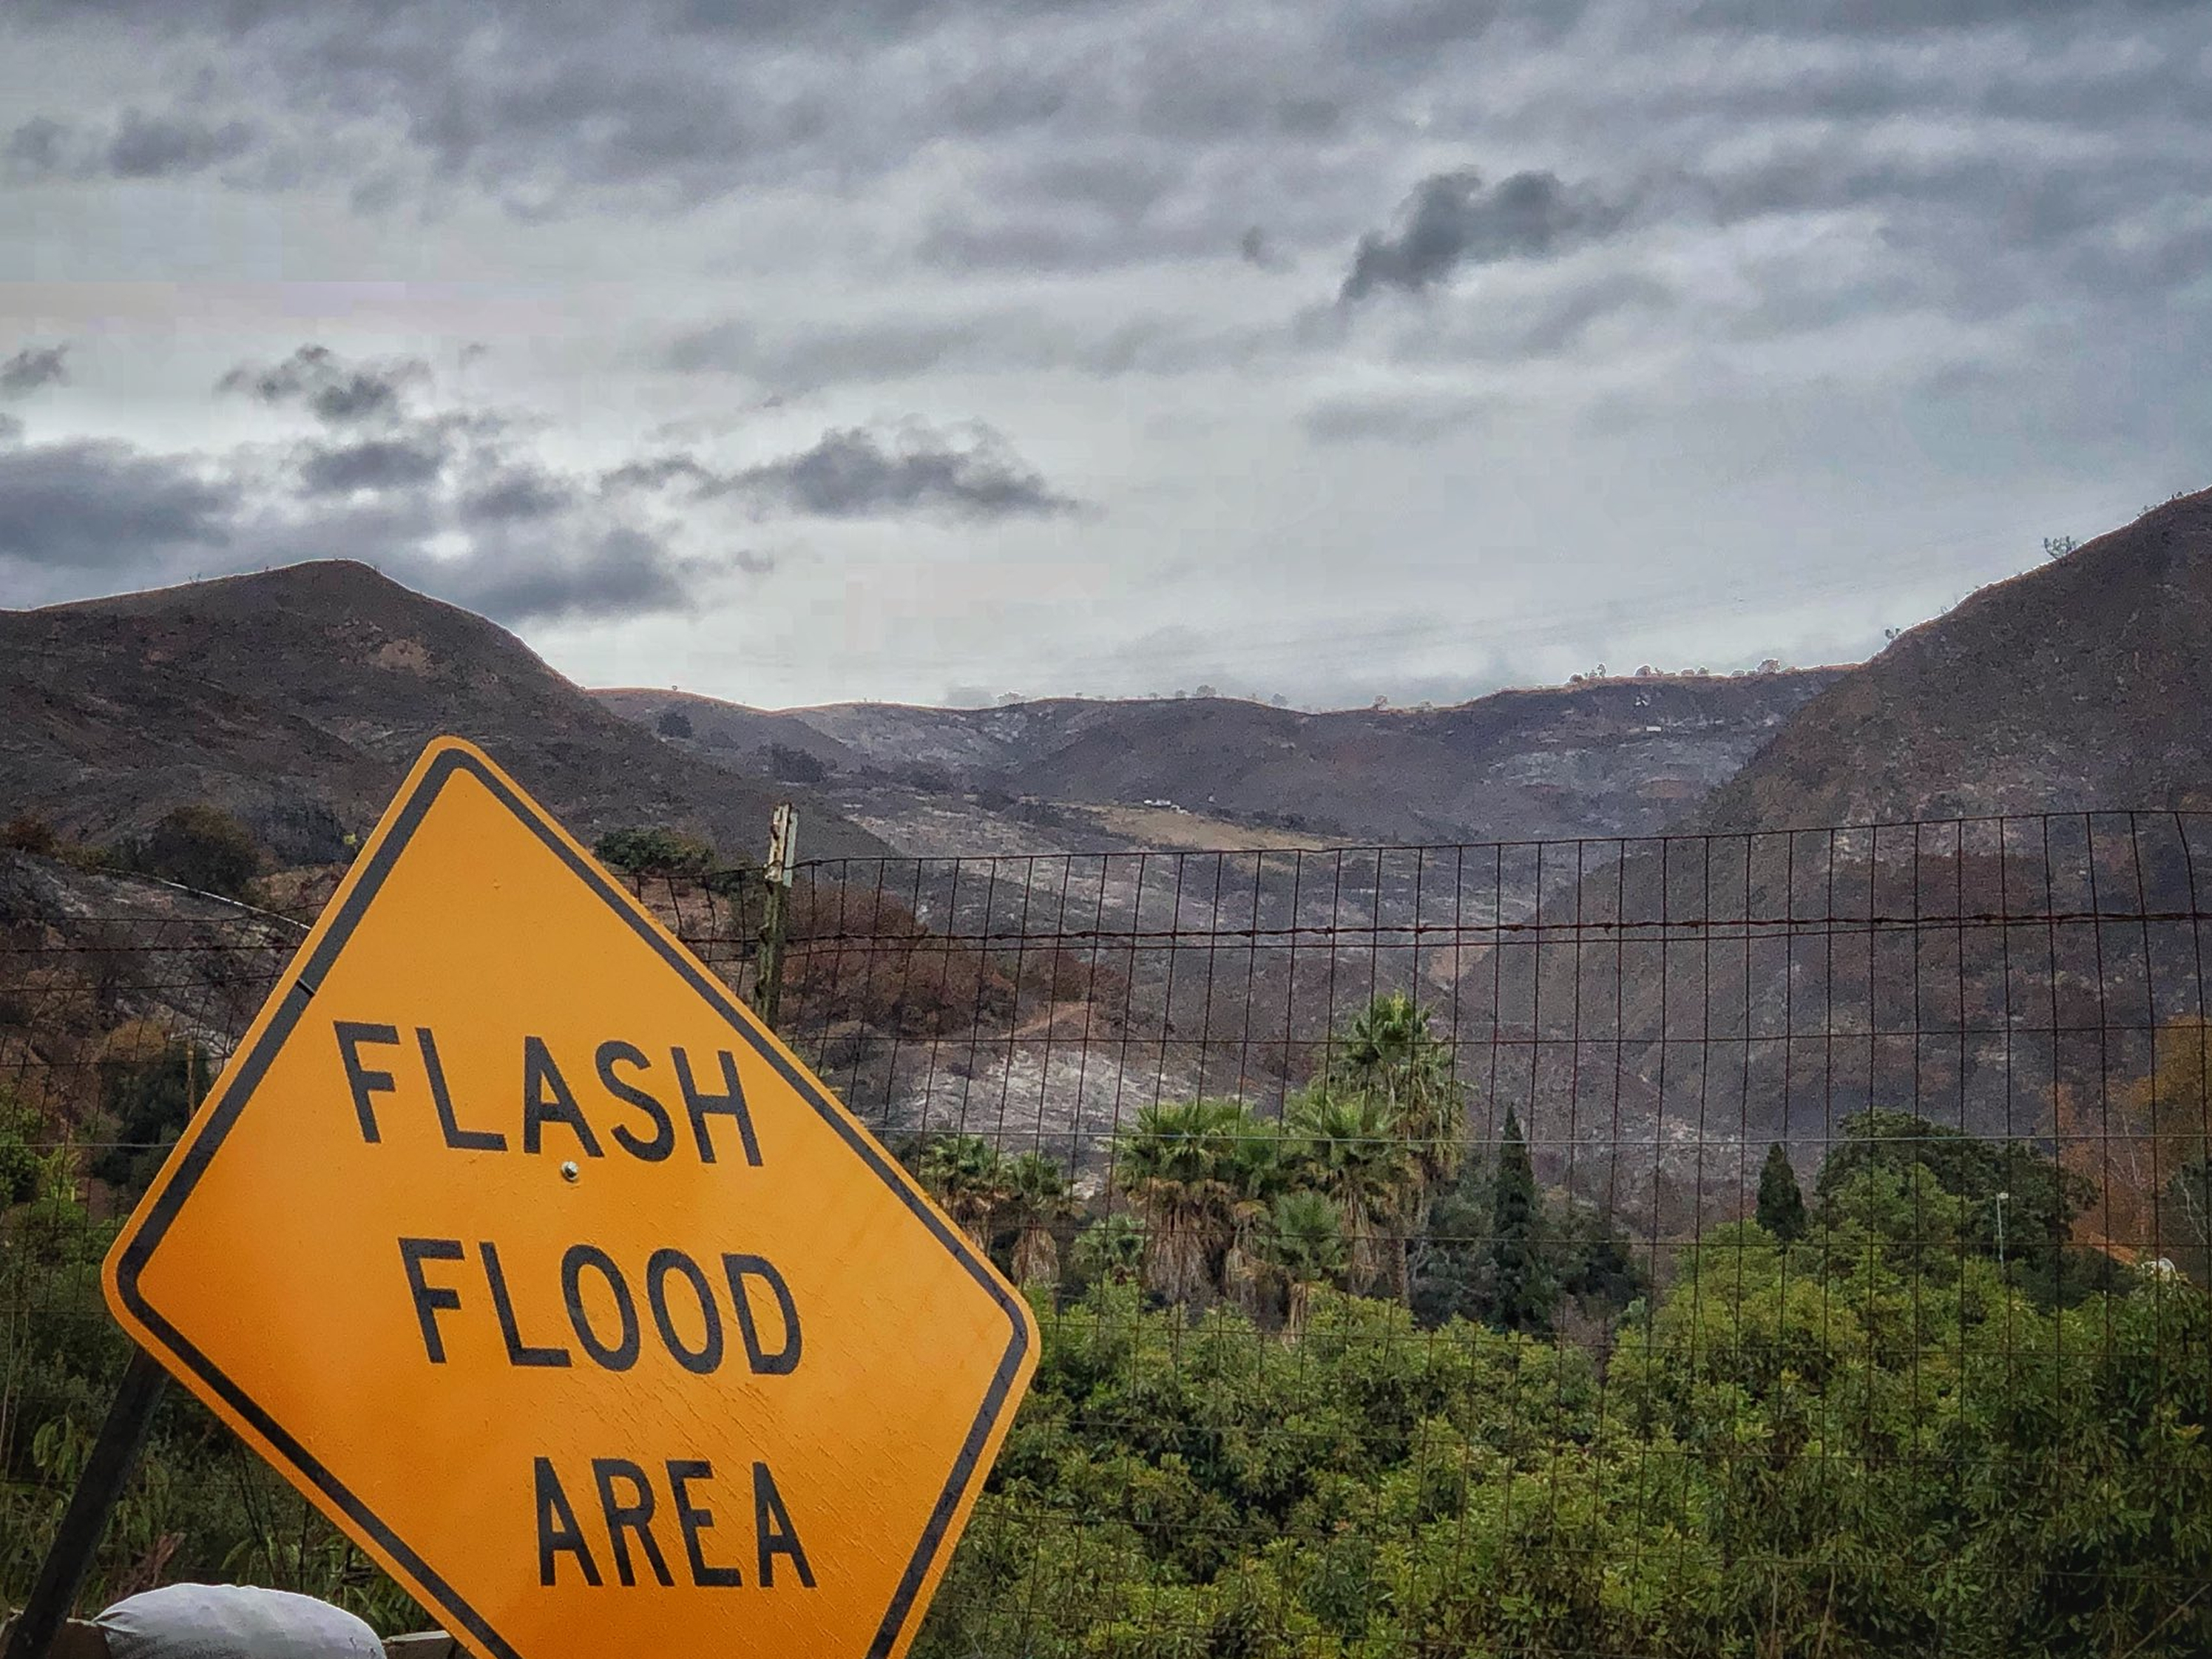 A flash flood area sign is posted as residents evacuate from several fire-ravaged communities in Santa Barbara, Calif.